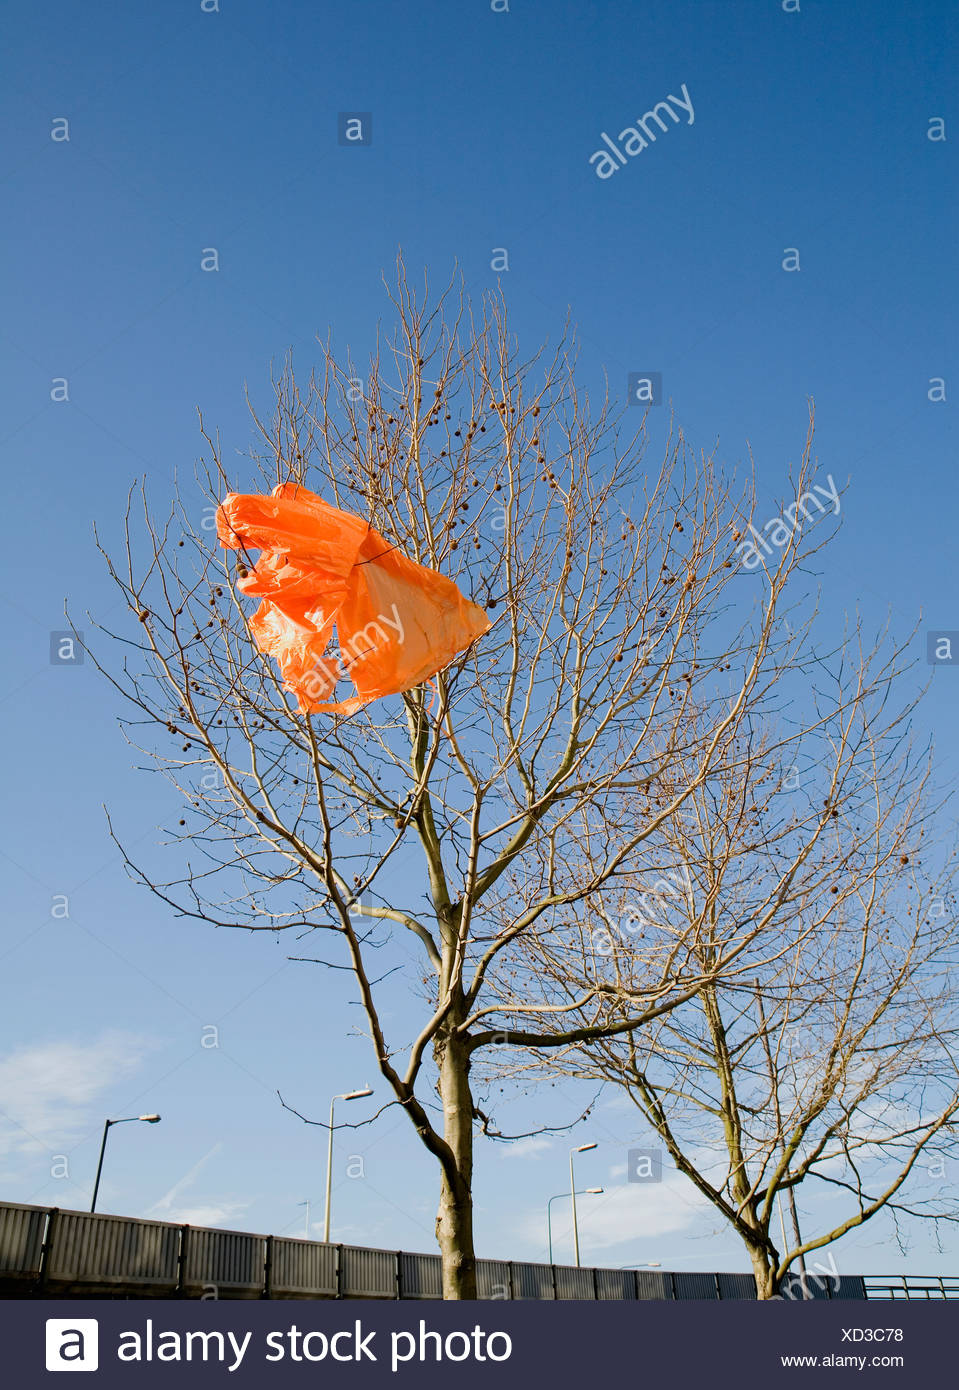 Orange carrier bag in tree - Stock Image